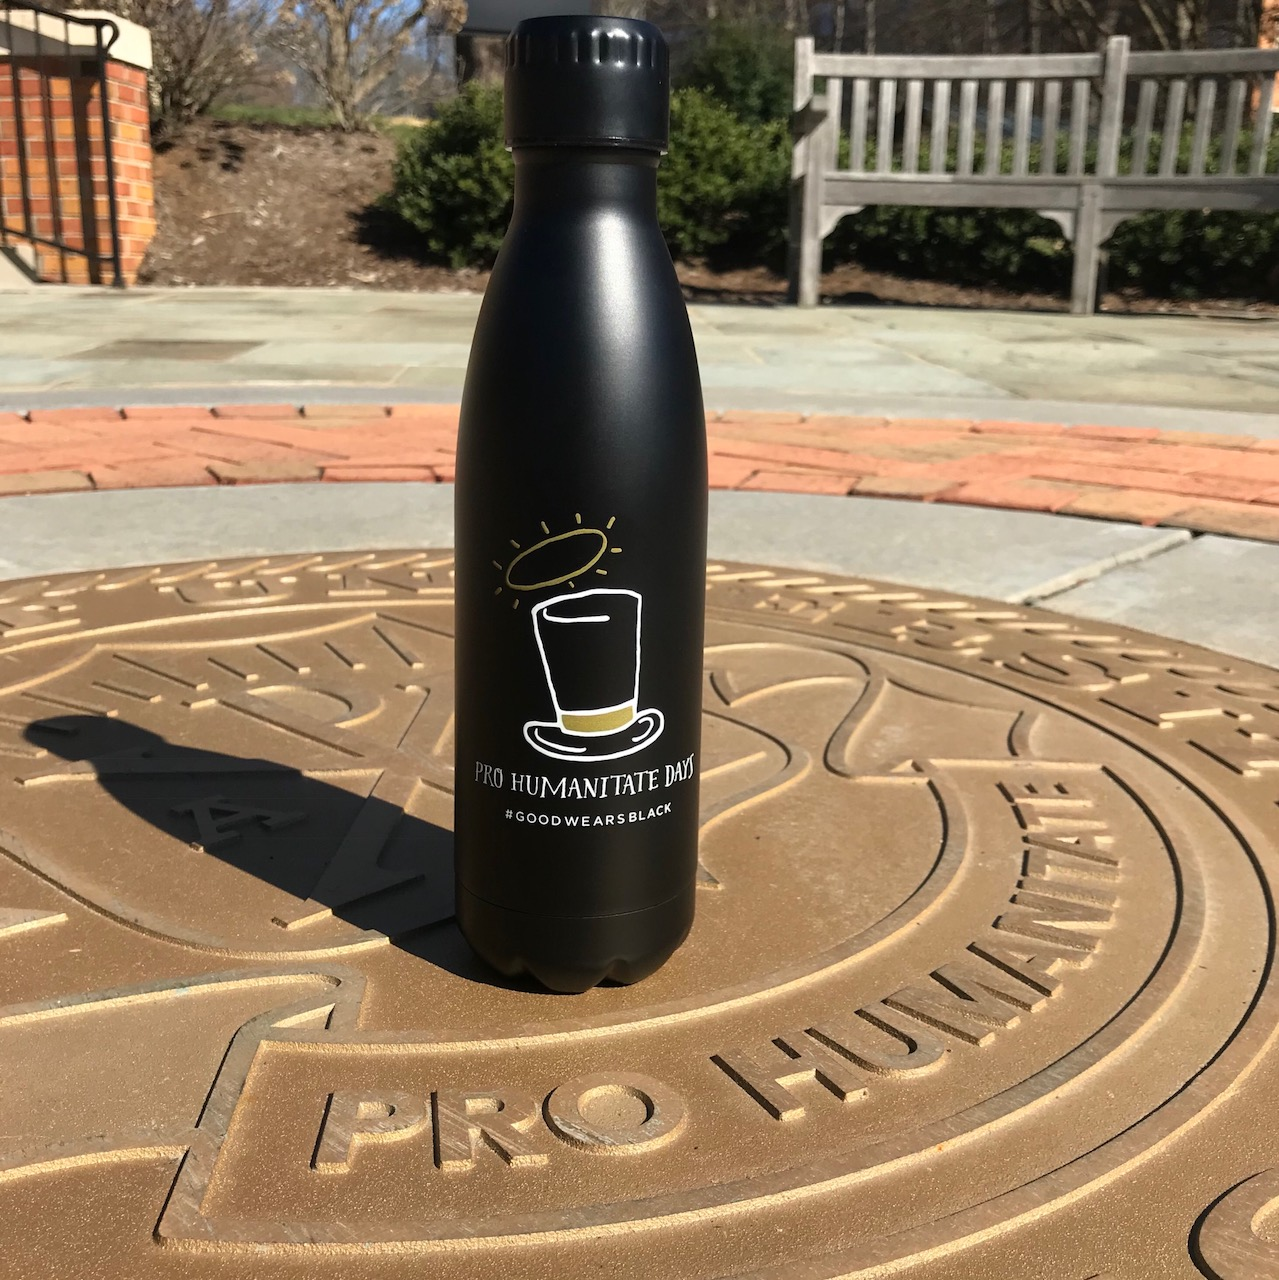 All registered 2018 participants will receive an insulated stainless steel Pro Humanitate Days water bottle.